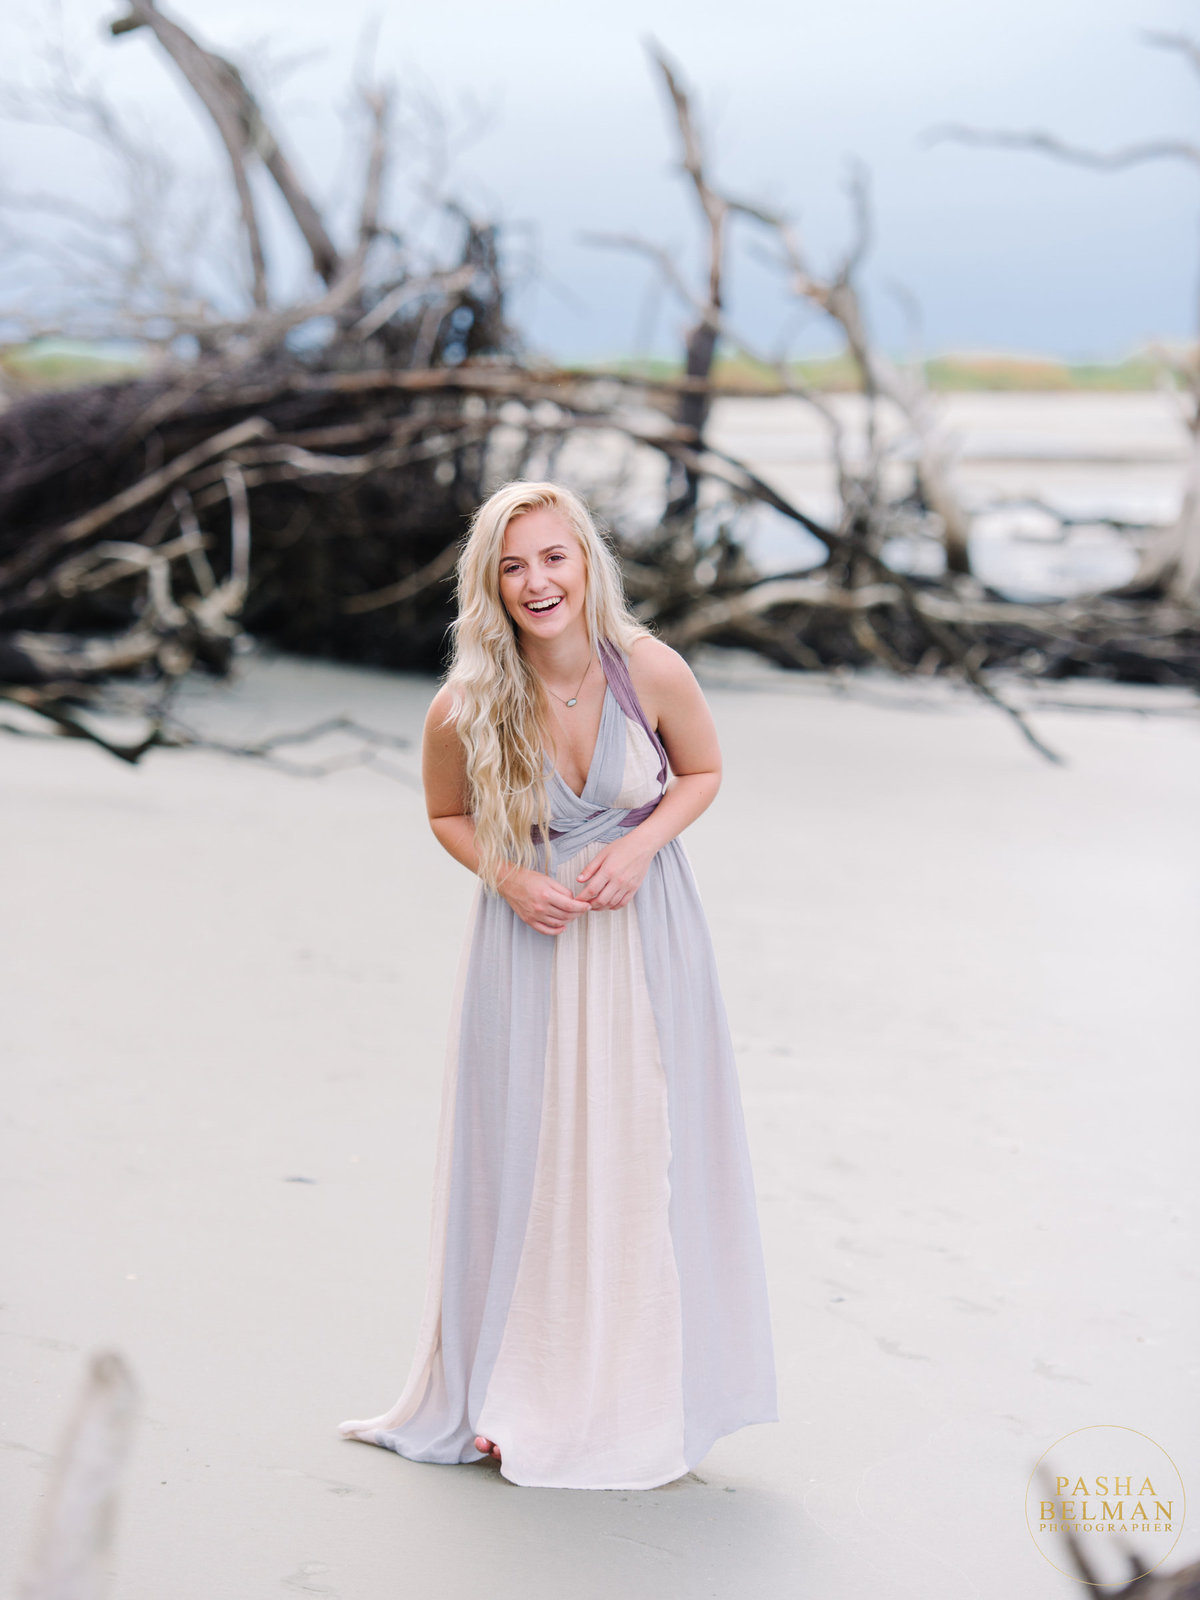 High school senior pictures, charleston senior pictures, and charleston senior portraits